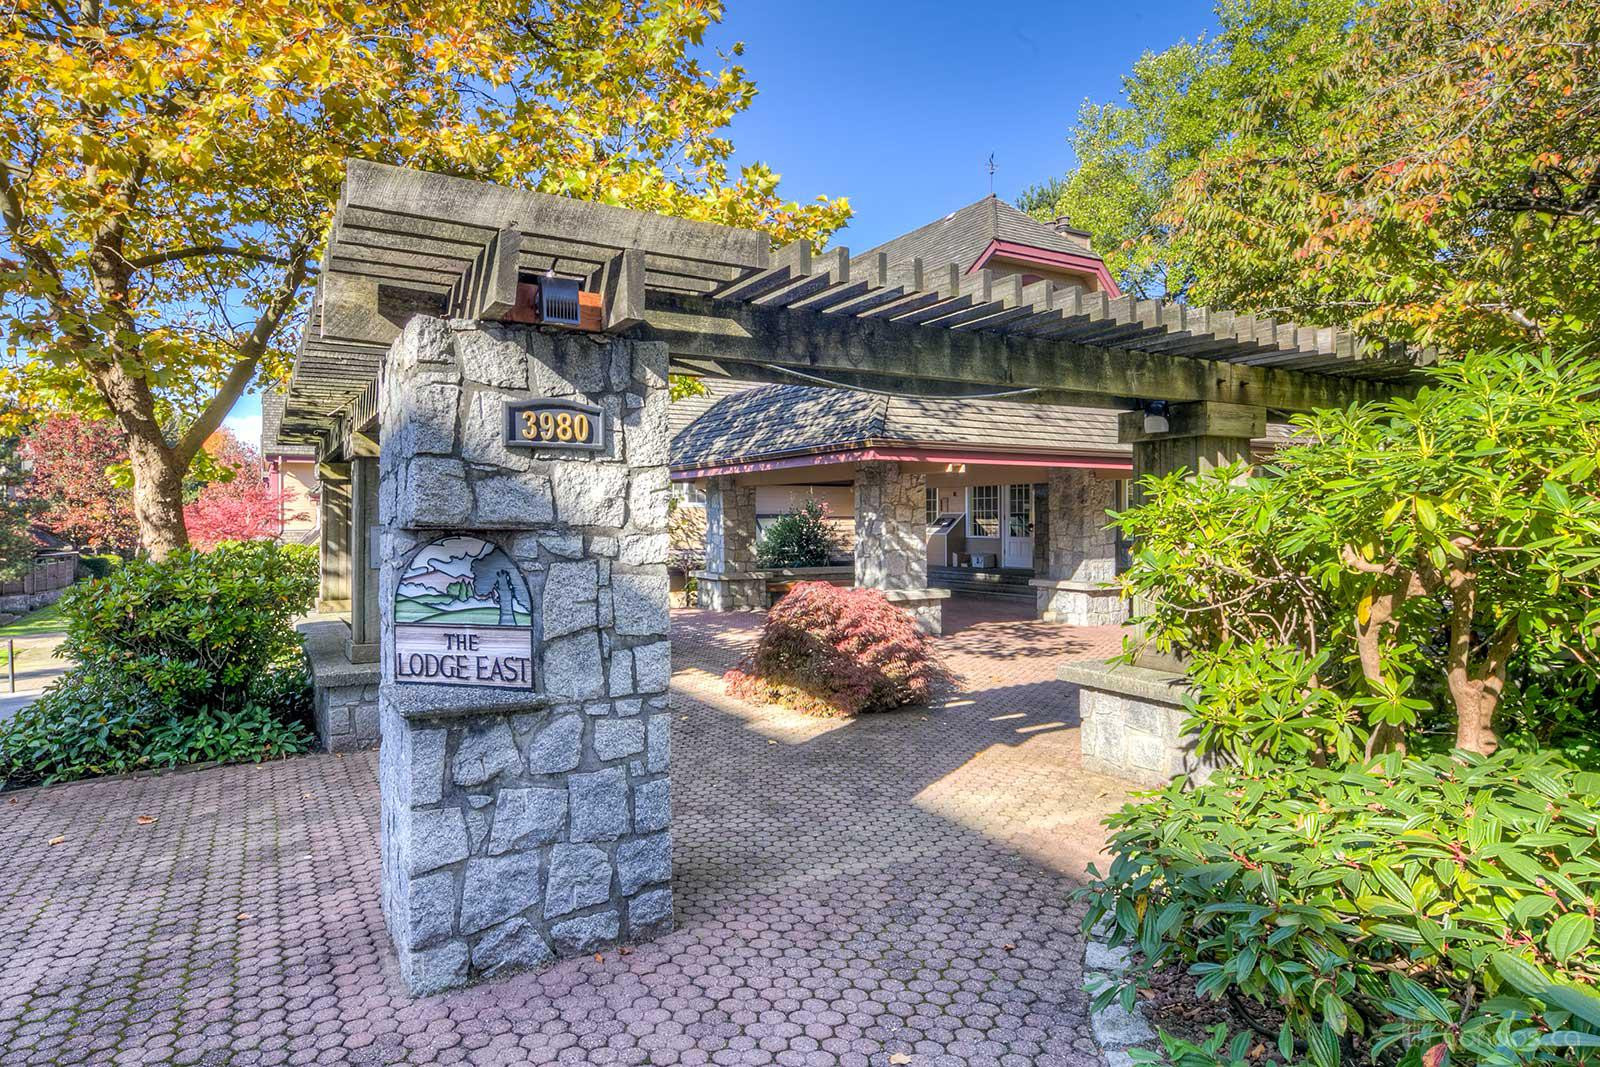 Cascade Village at 3461 Curle Ave, Burnaby 0